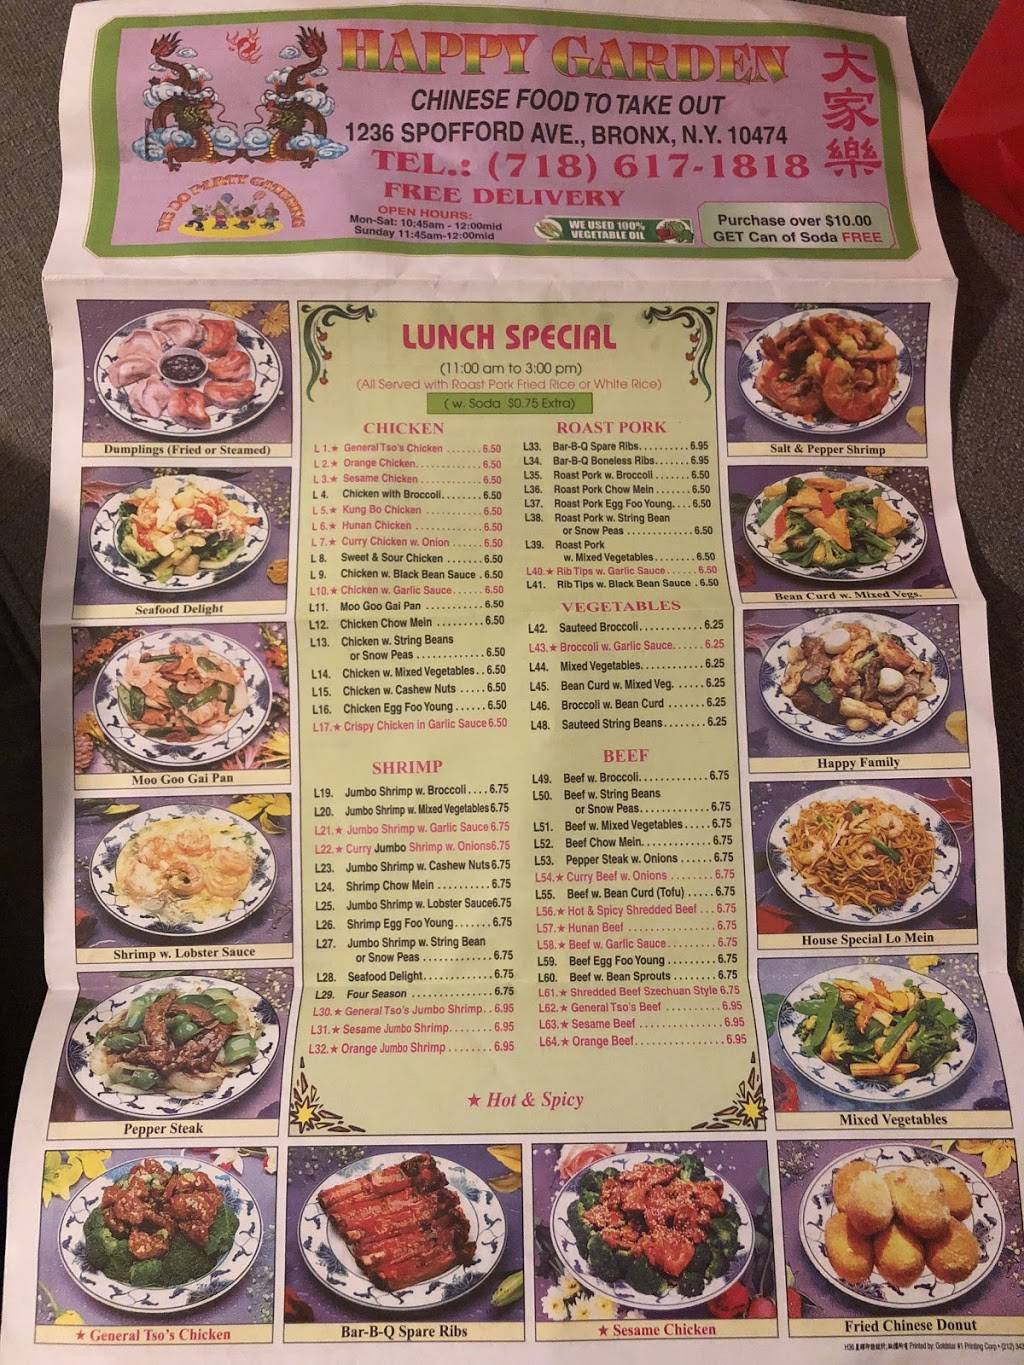 Chinese Fried Chicken | restaurant | 1236 Spofford Ave, Bronx, NY 10474, USA | 7186171818 OR +1 718-617-1818